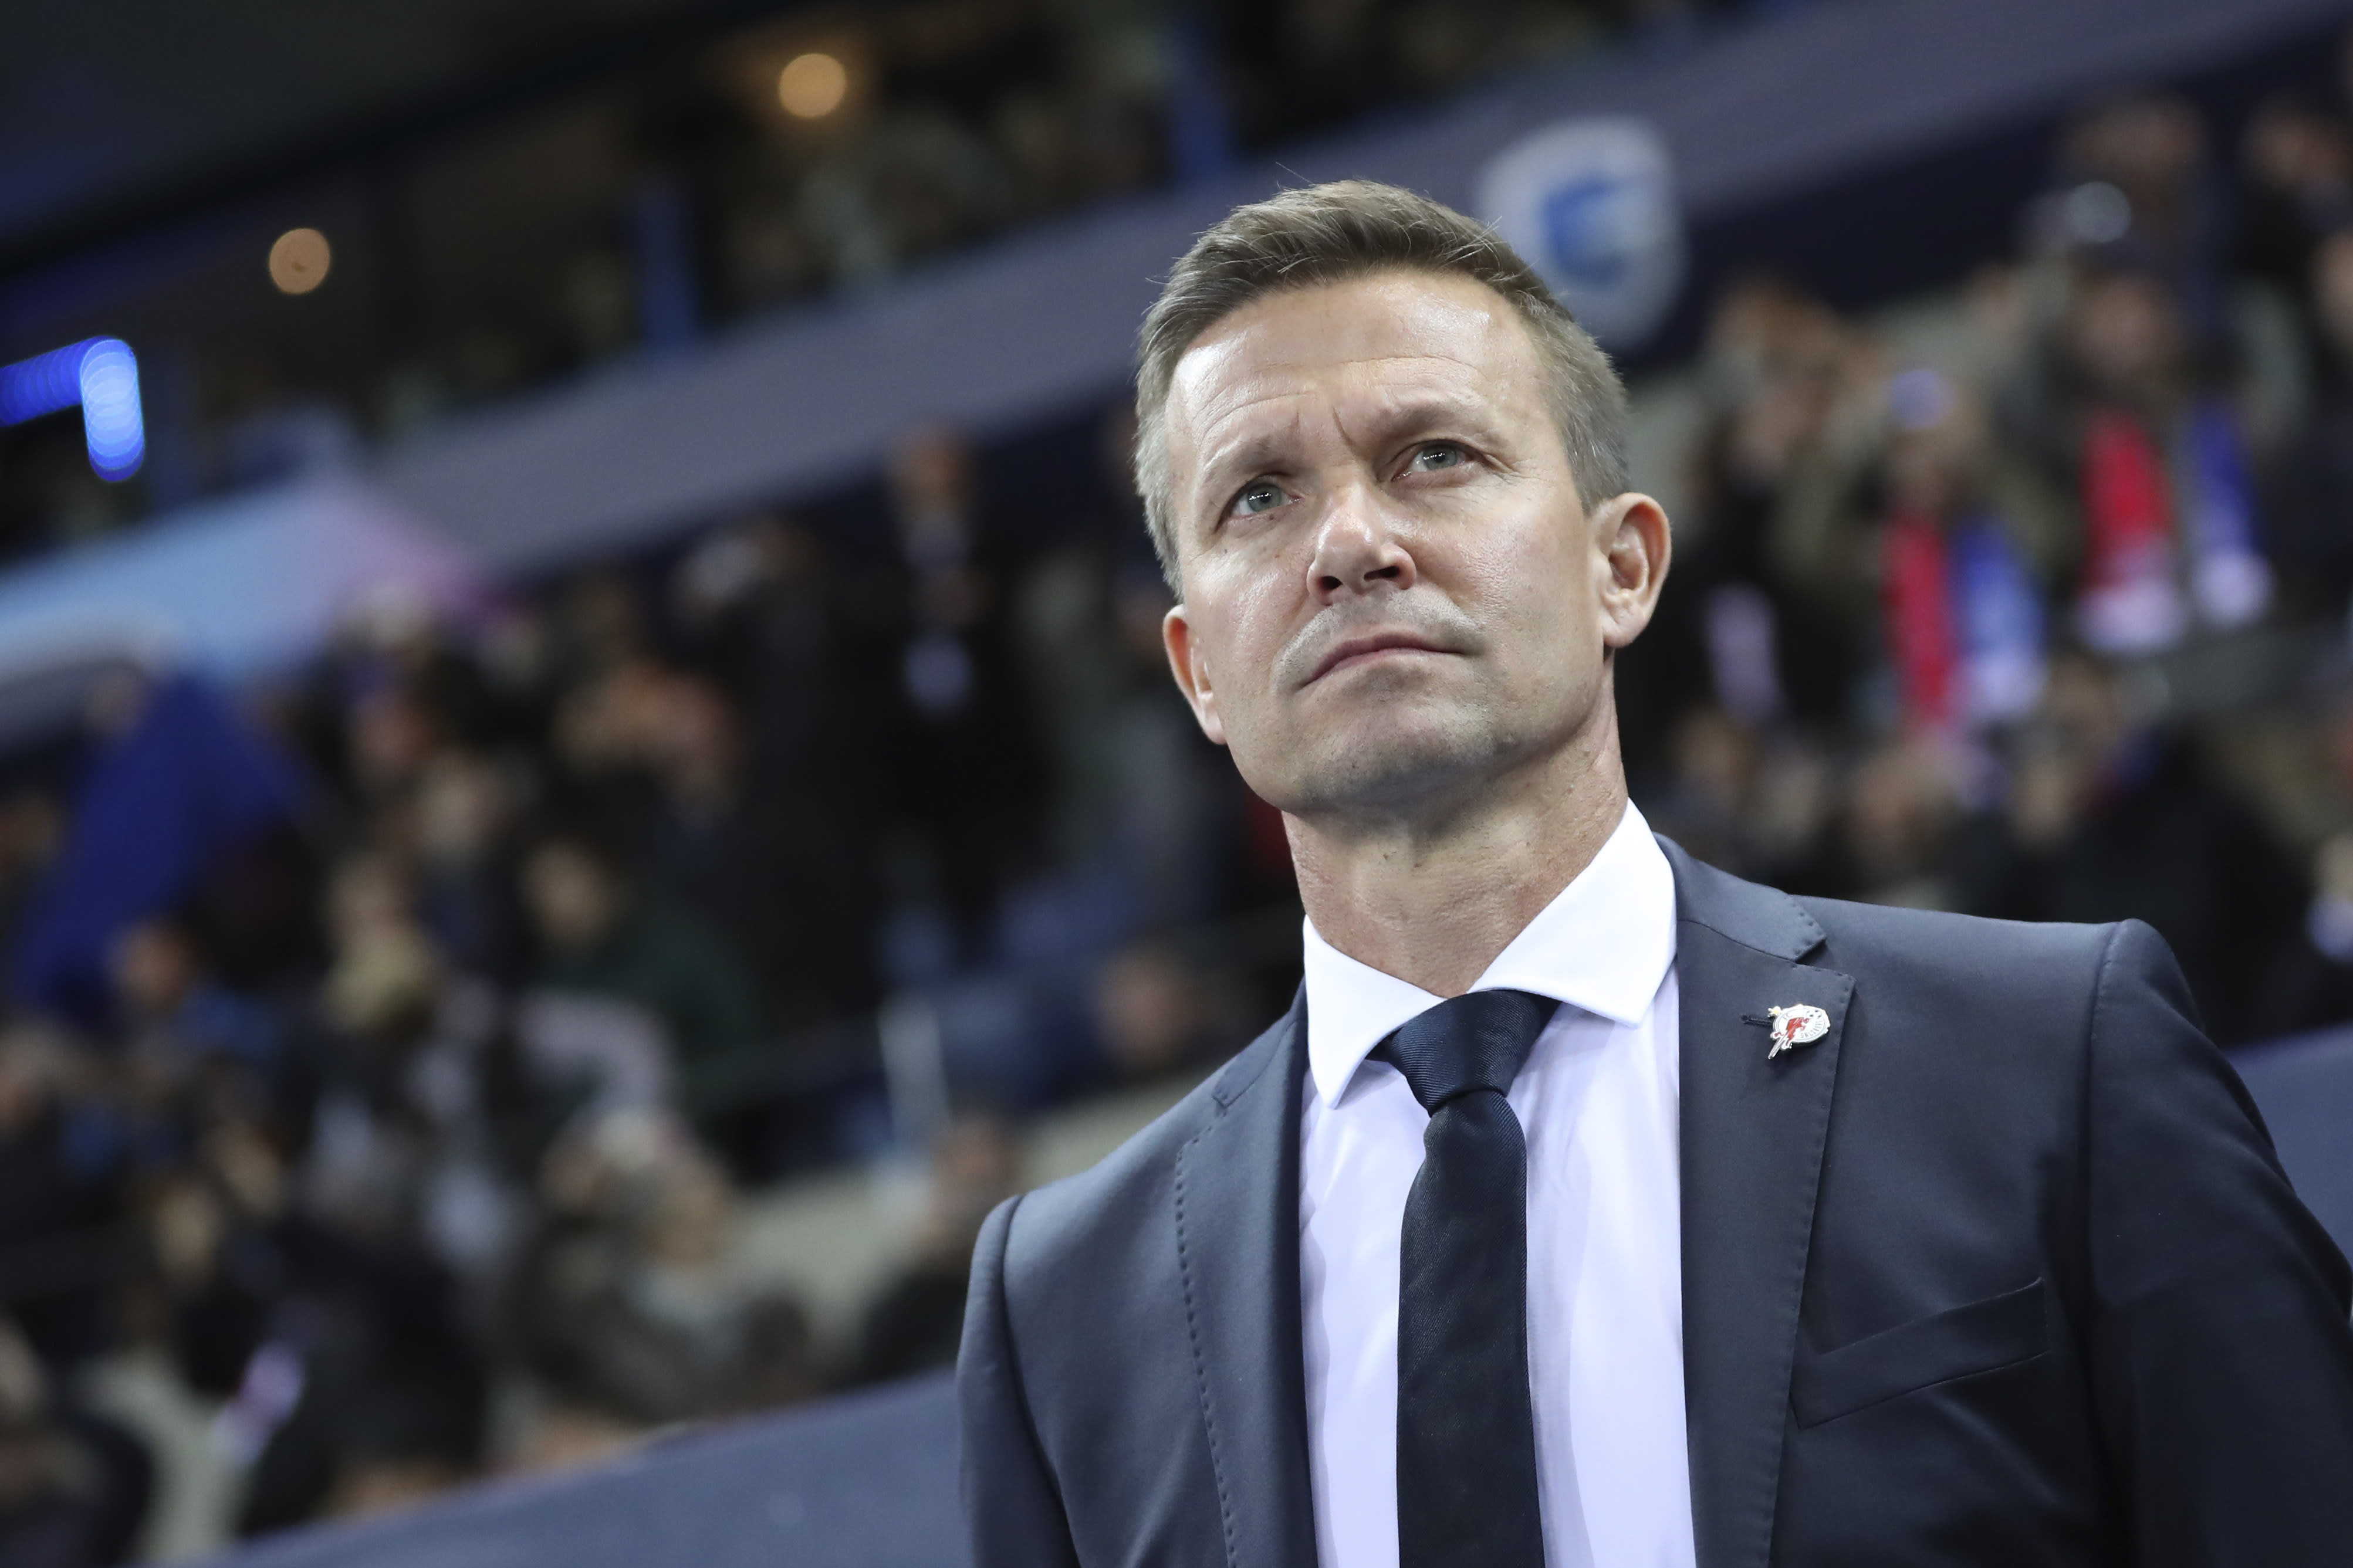 "FILE - In this file photo dated Wednesday, Nov. 27, 2019, Salzburg soccer coach Jesse Marsch stands on the sidelines during a Champions League group E soccer match against Genk at the KRC Genk Arena in Genk, Belgium. Marsch led Salzburg to this season's Austrian league title, the most significant trophy won by an American coach in Europe, and says he wanted ""to see if my idea of leadership could thrive in this competitive setting,"" the Wisconsin native told The Associated Press Friday July 3, 2020. (AP Photo/Francisco Seco, FILE)"